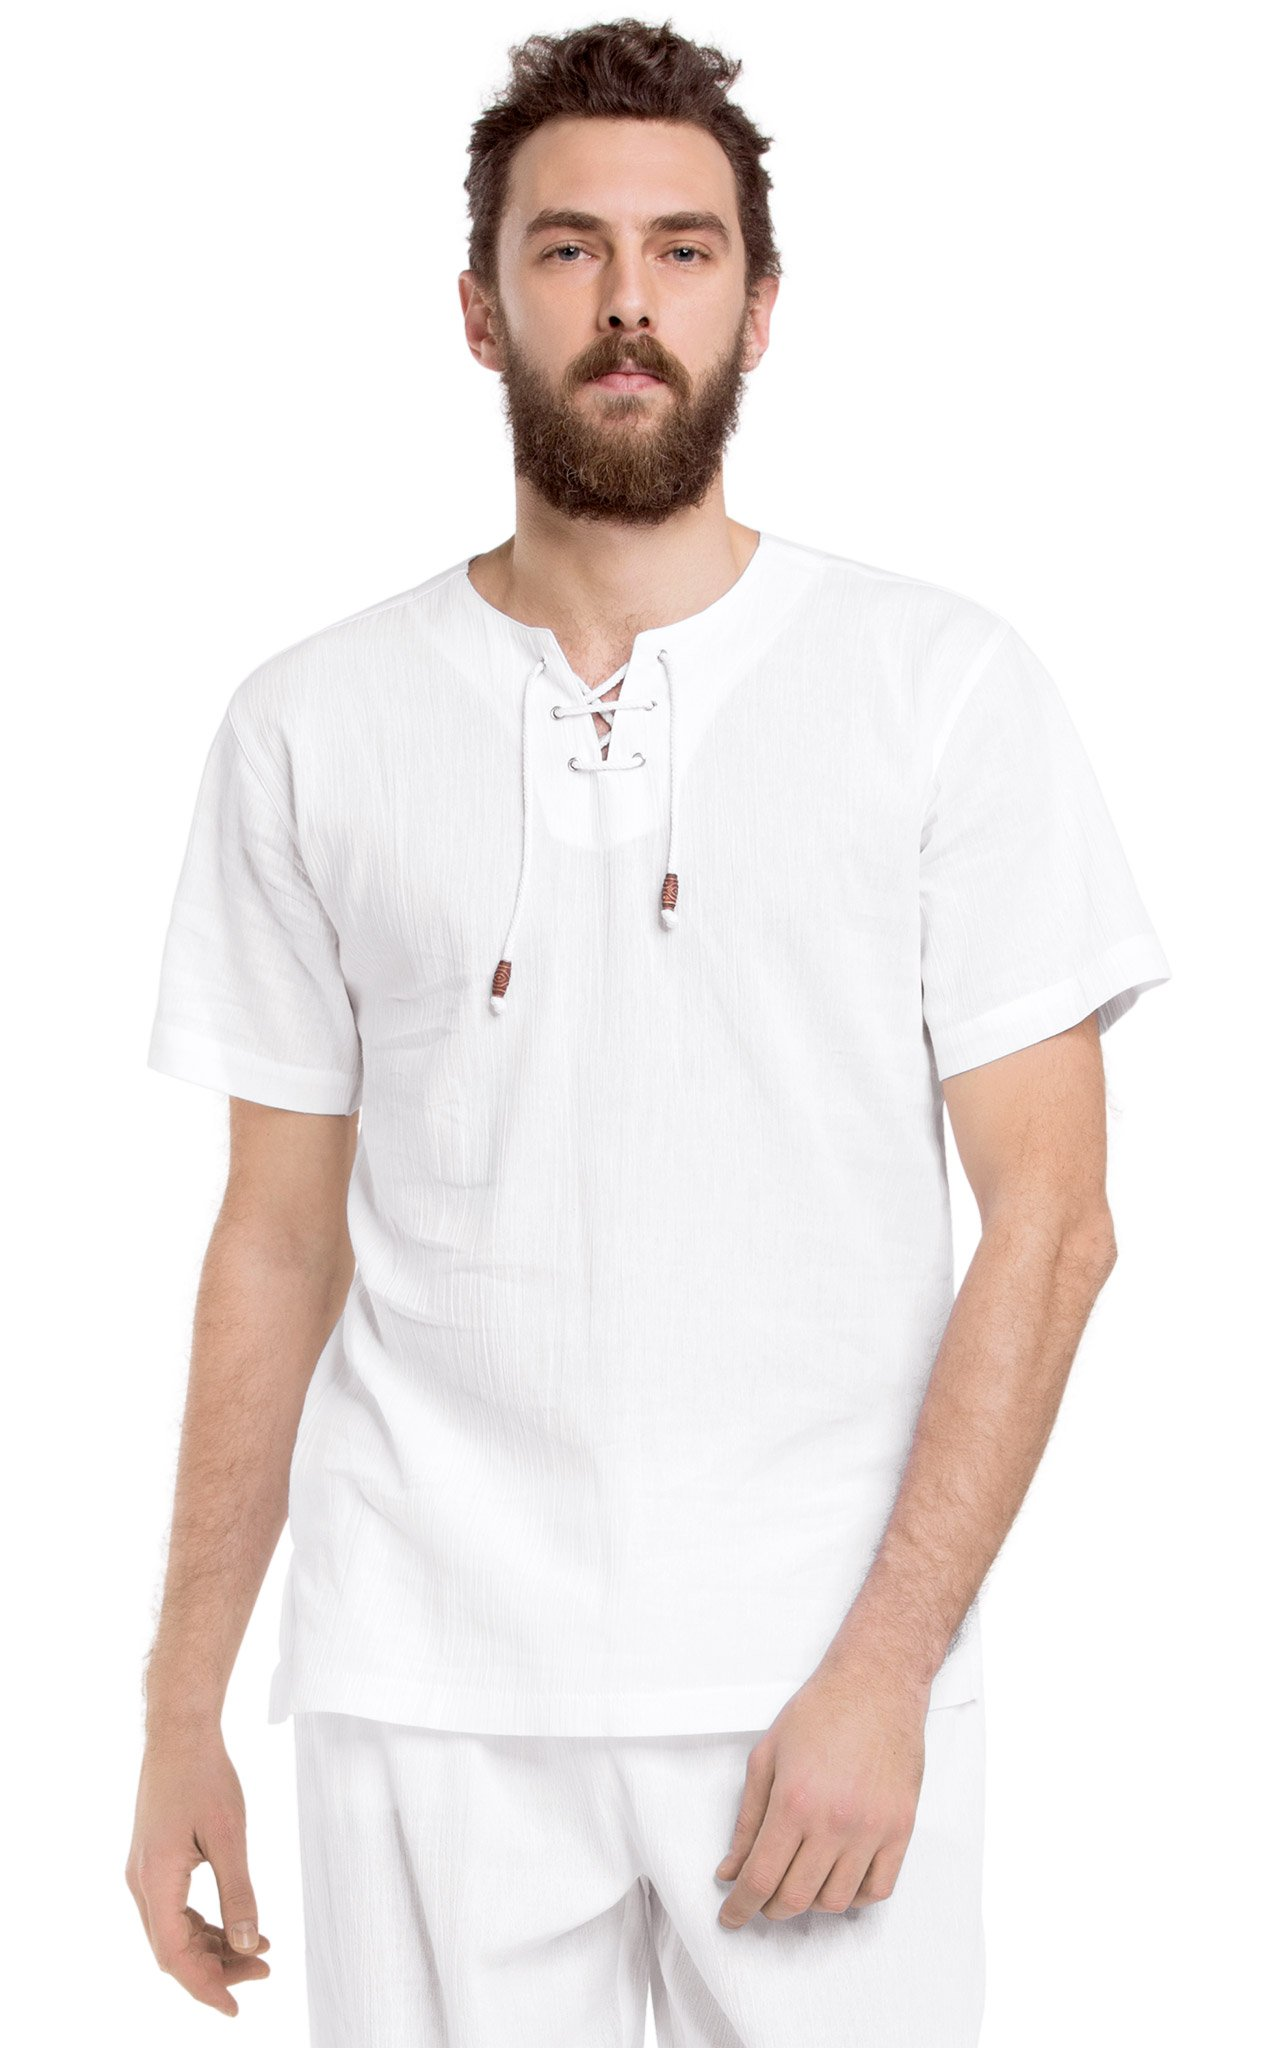 White by Nature Men's Lace up Short Sleeve Cotton T-Shirt M